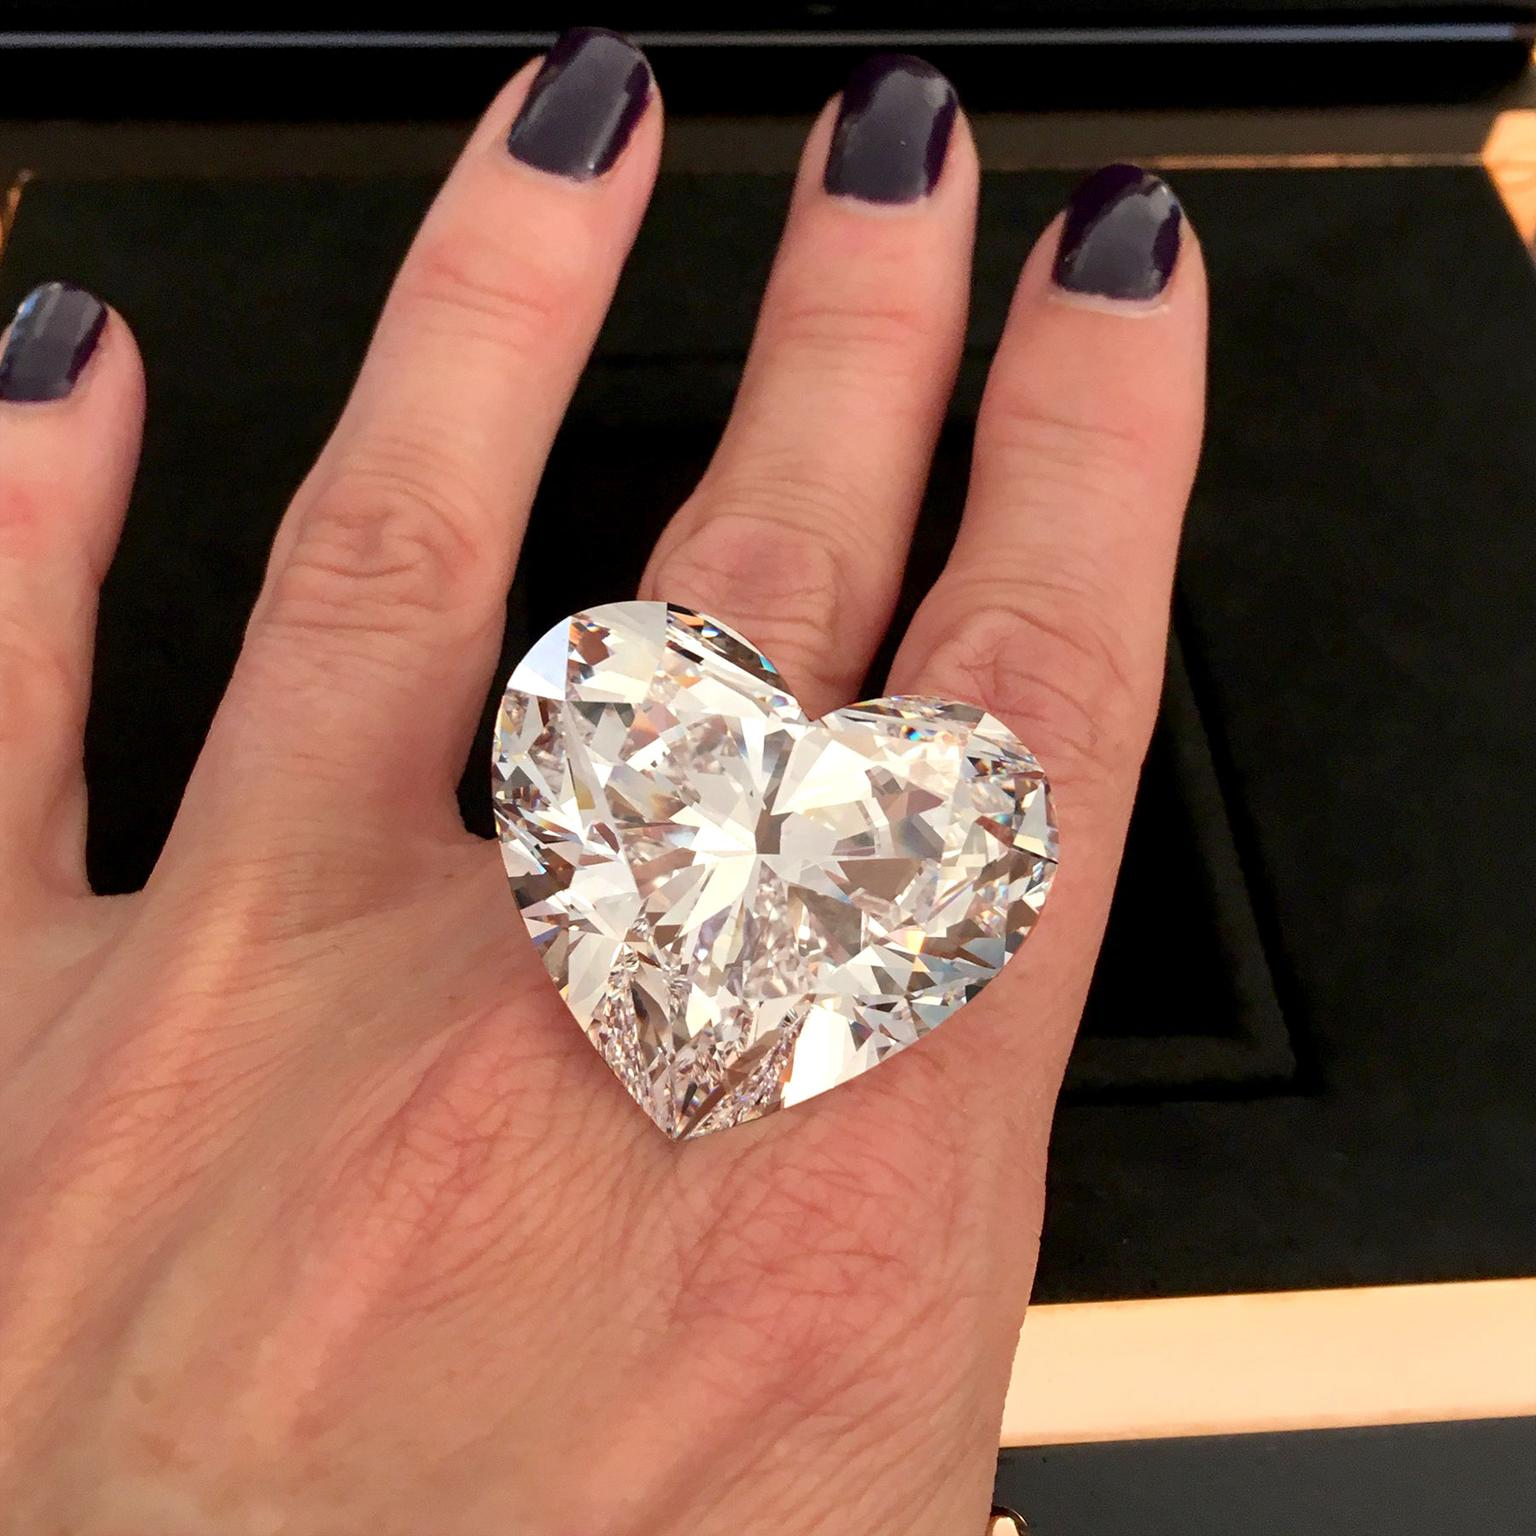 Graff Venus: 118 carat record-breaking flawless heart shape diamond